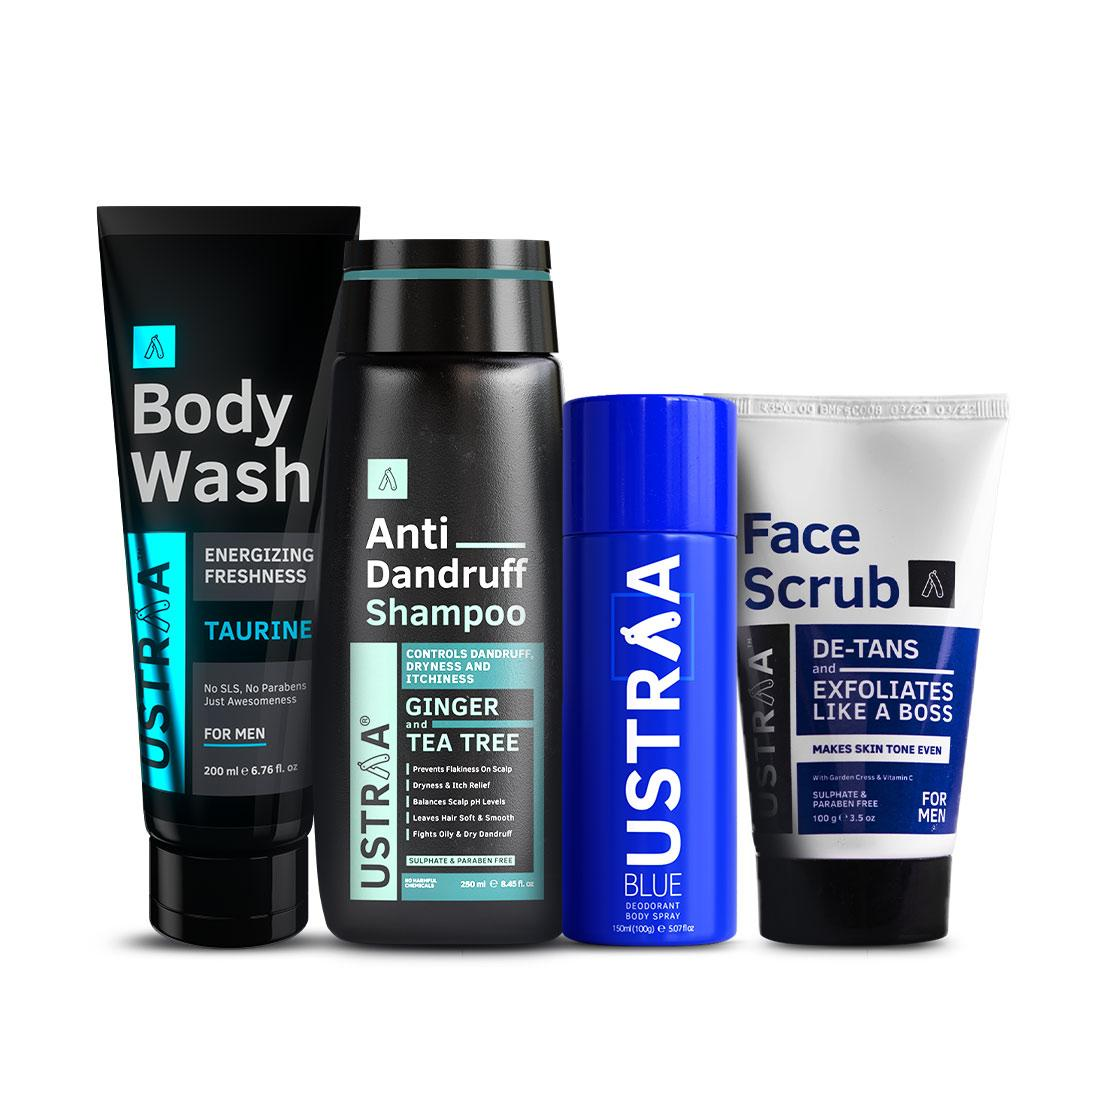 Ustraa Men Monthly Essential Kit (Pack of 4): Deo Blue, De-Tan Face Scrub, Anti-dandruff Shampoo, and Body Wash Taurine